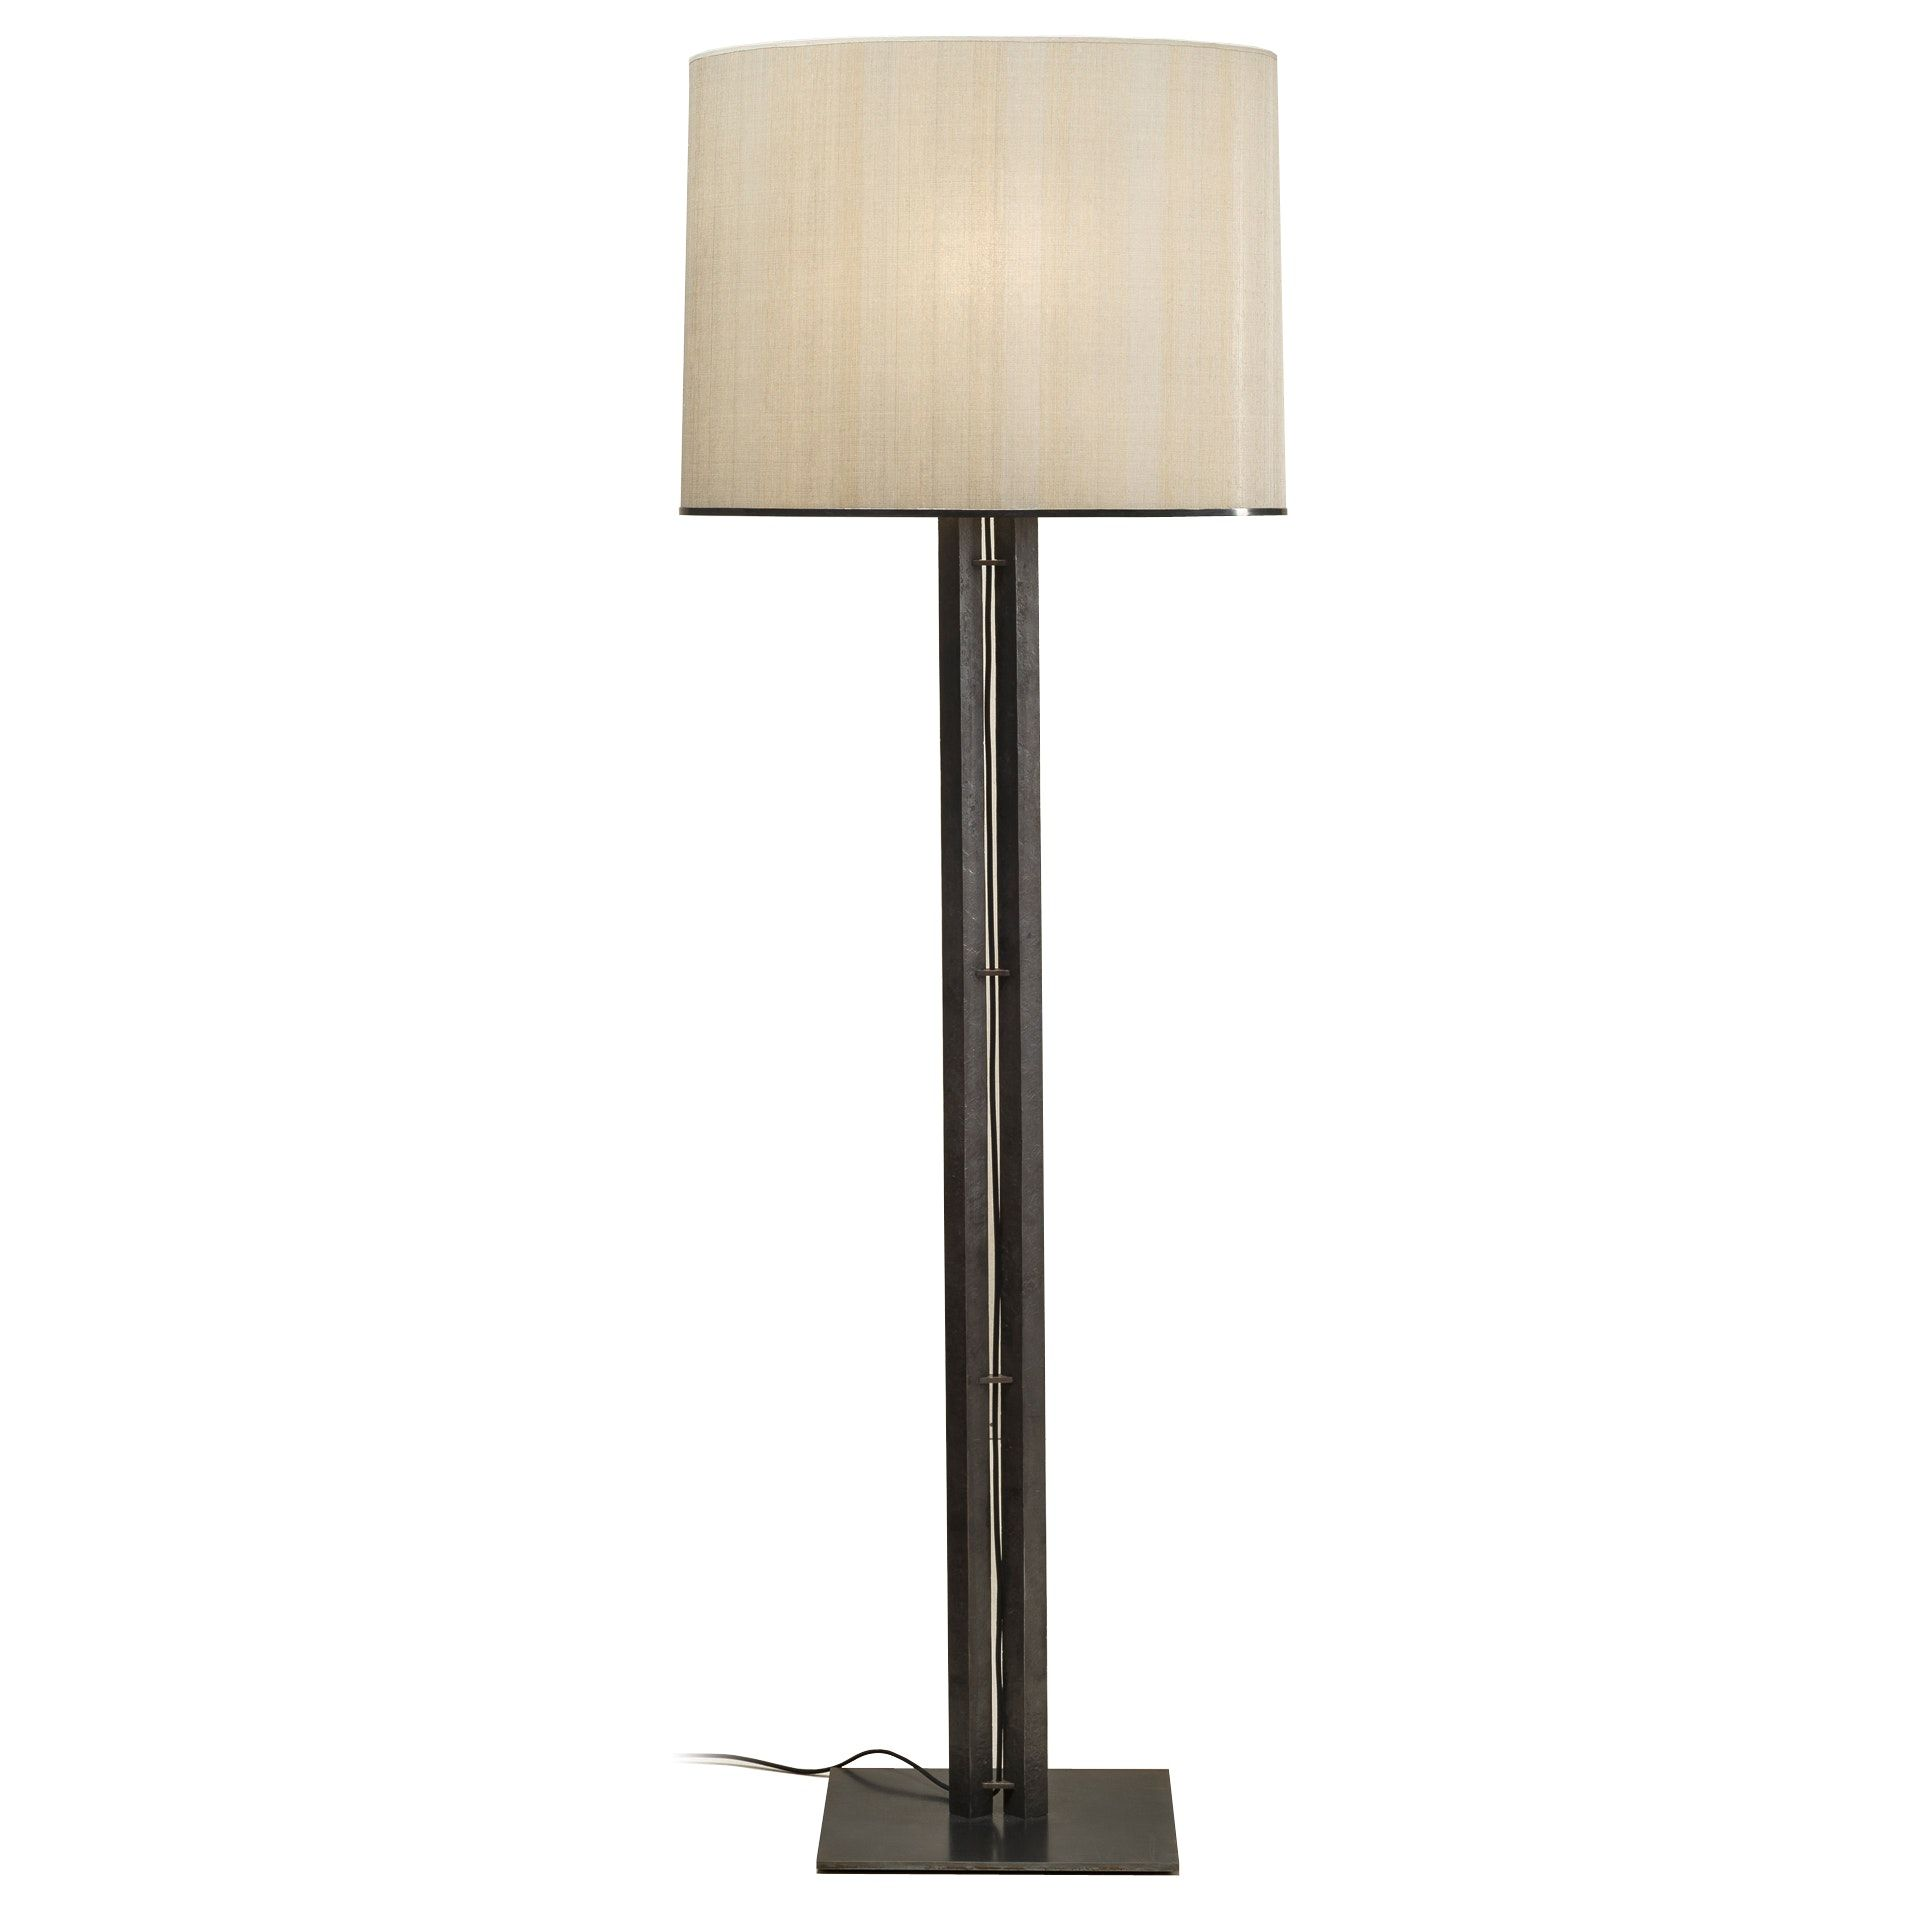 floor lighting design lamp will floors contemporary you that ideas love